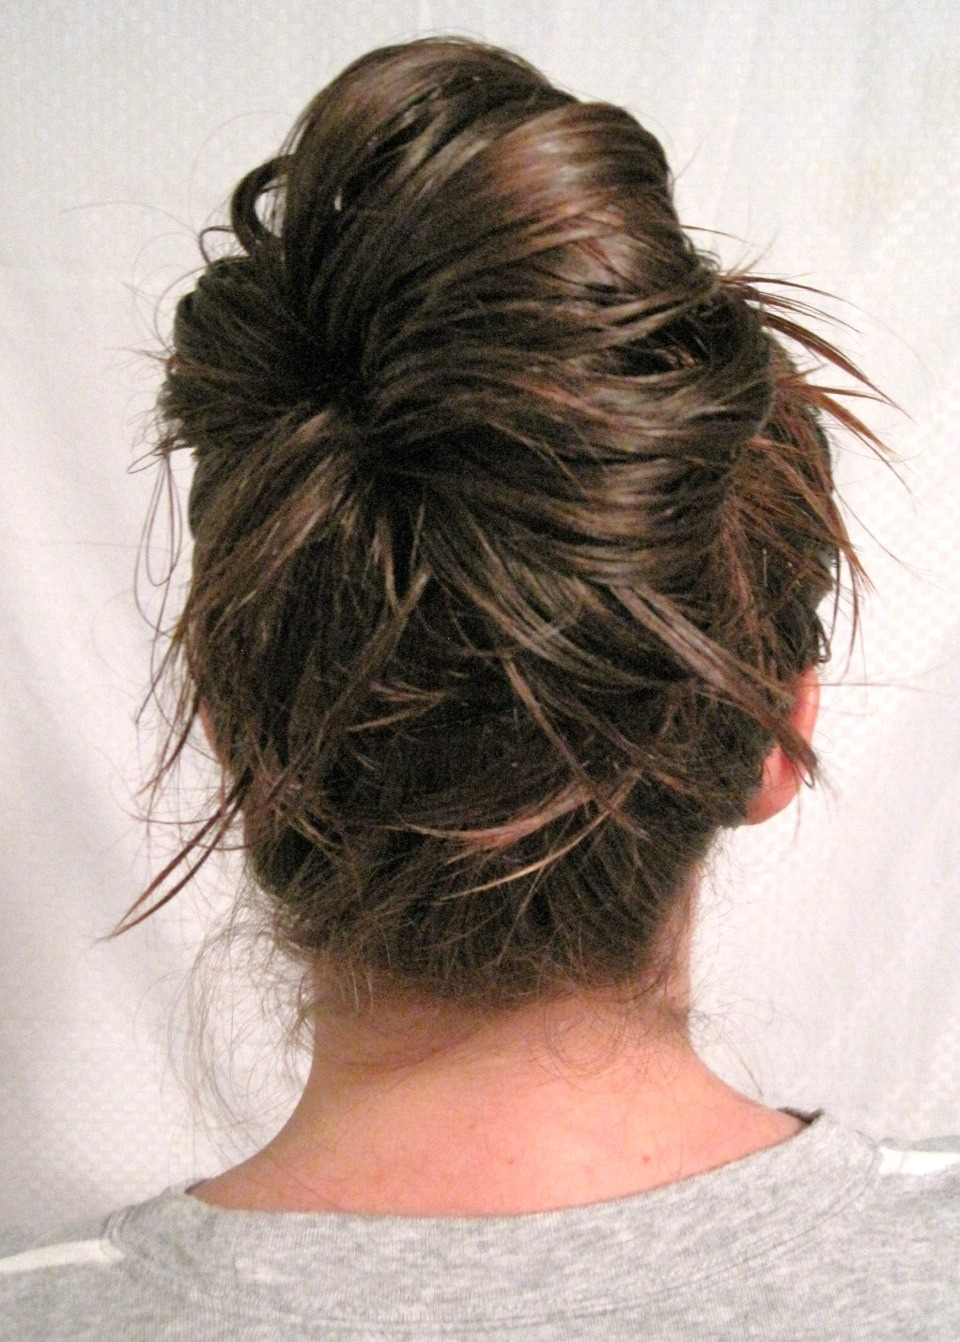 Once your moussed, damp hair, is in a bun... Go to sleep.  Make sure to put a towel over your pillow!